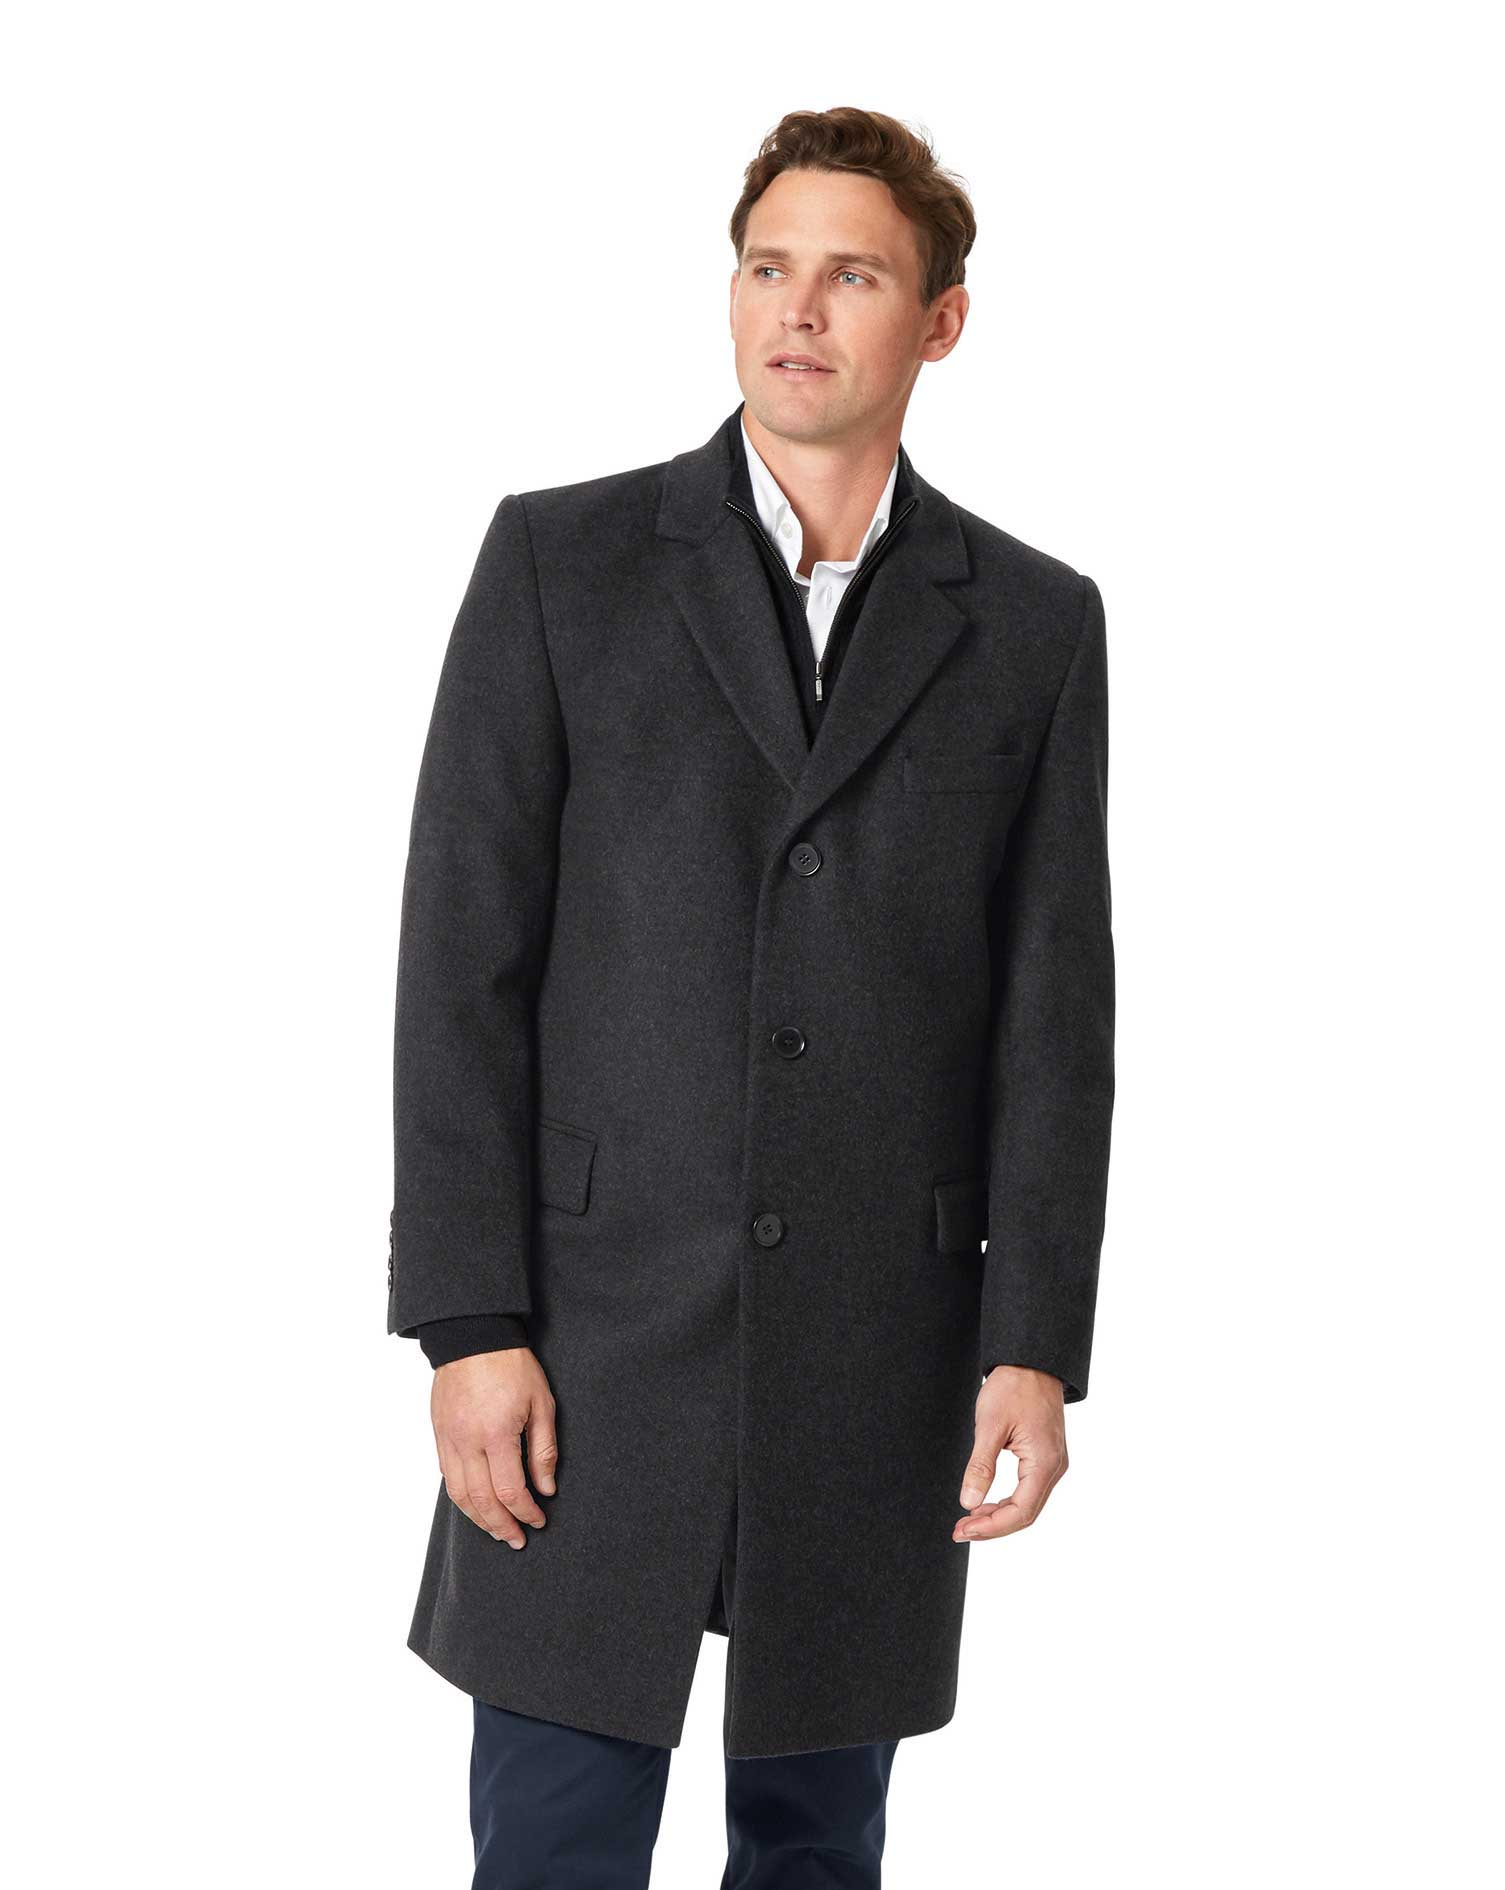 Grey Wool and Cashmere Overcoat Size 46 Long by Charles Tyrwhitt